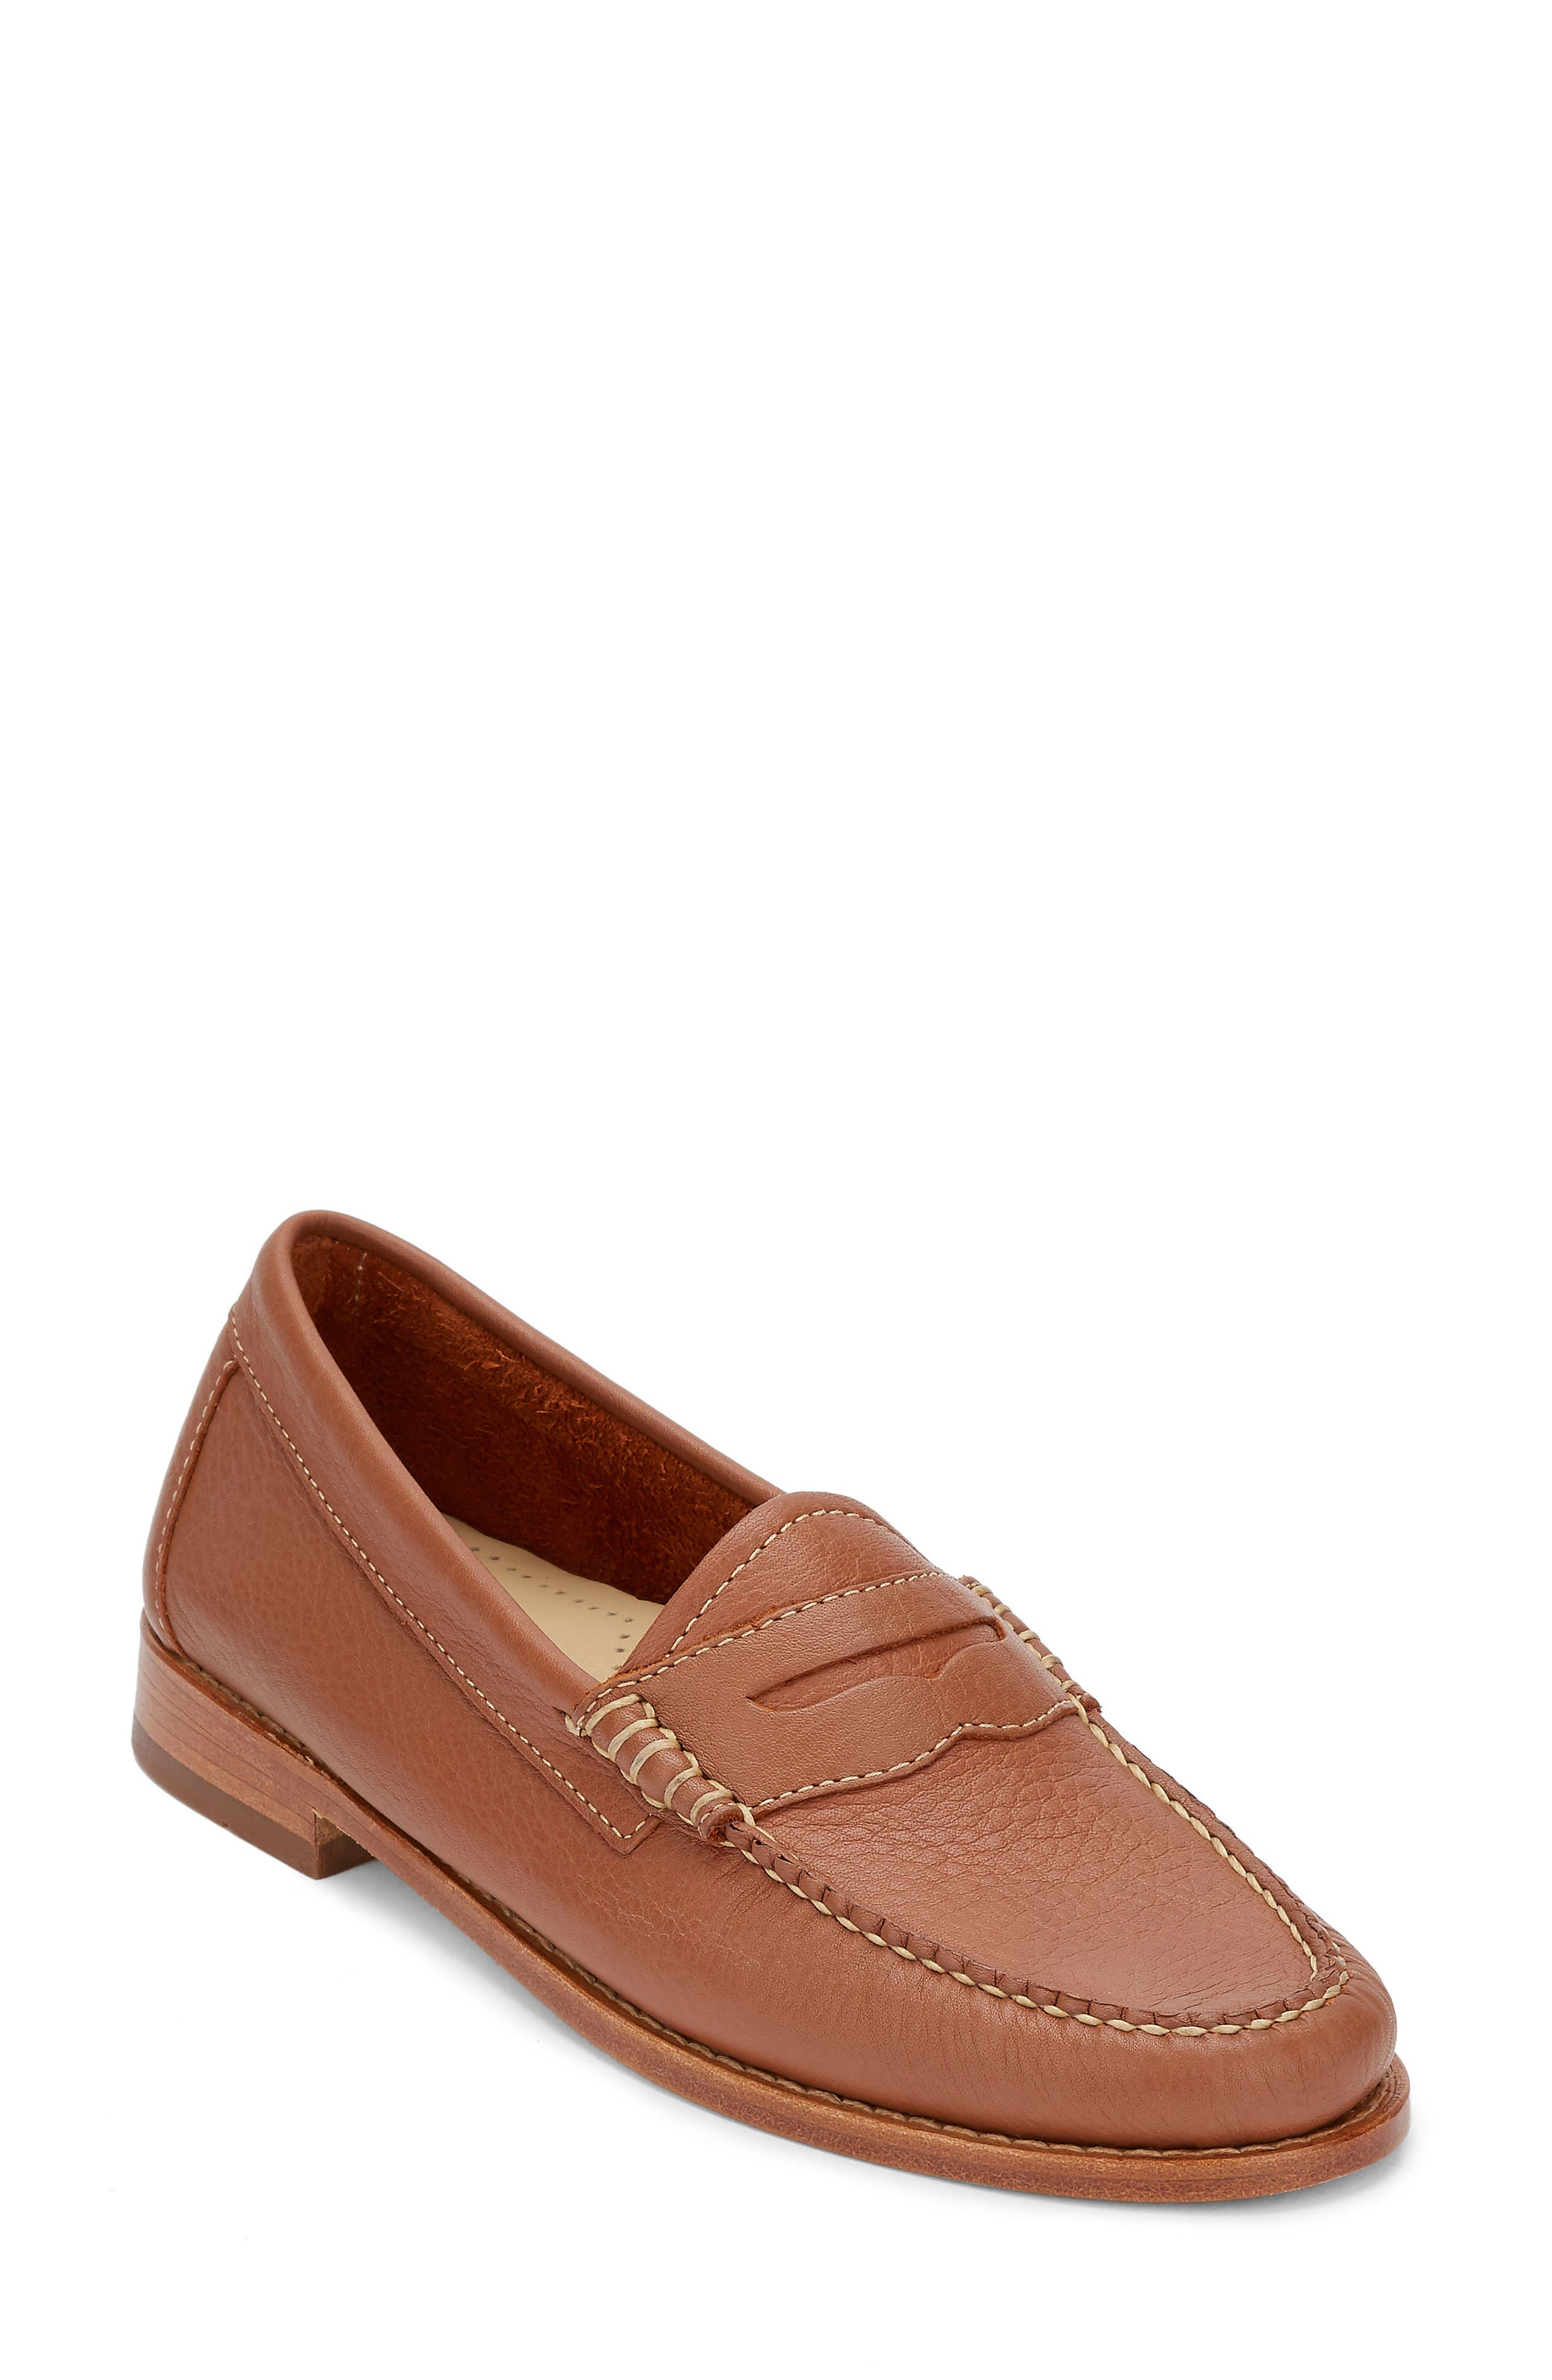 'Whitney' Loafer,                             Main thumbnail 30, color,